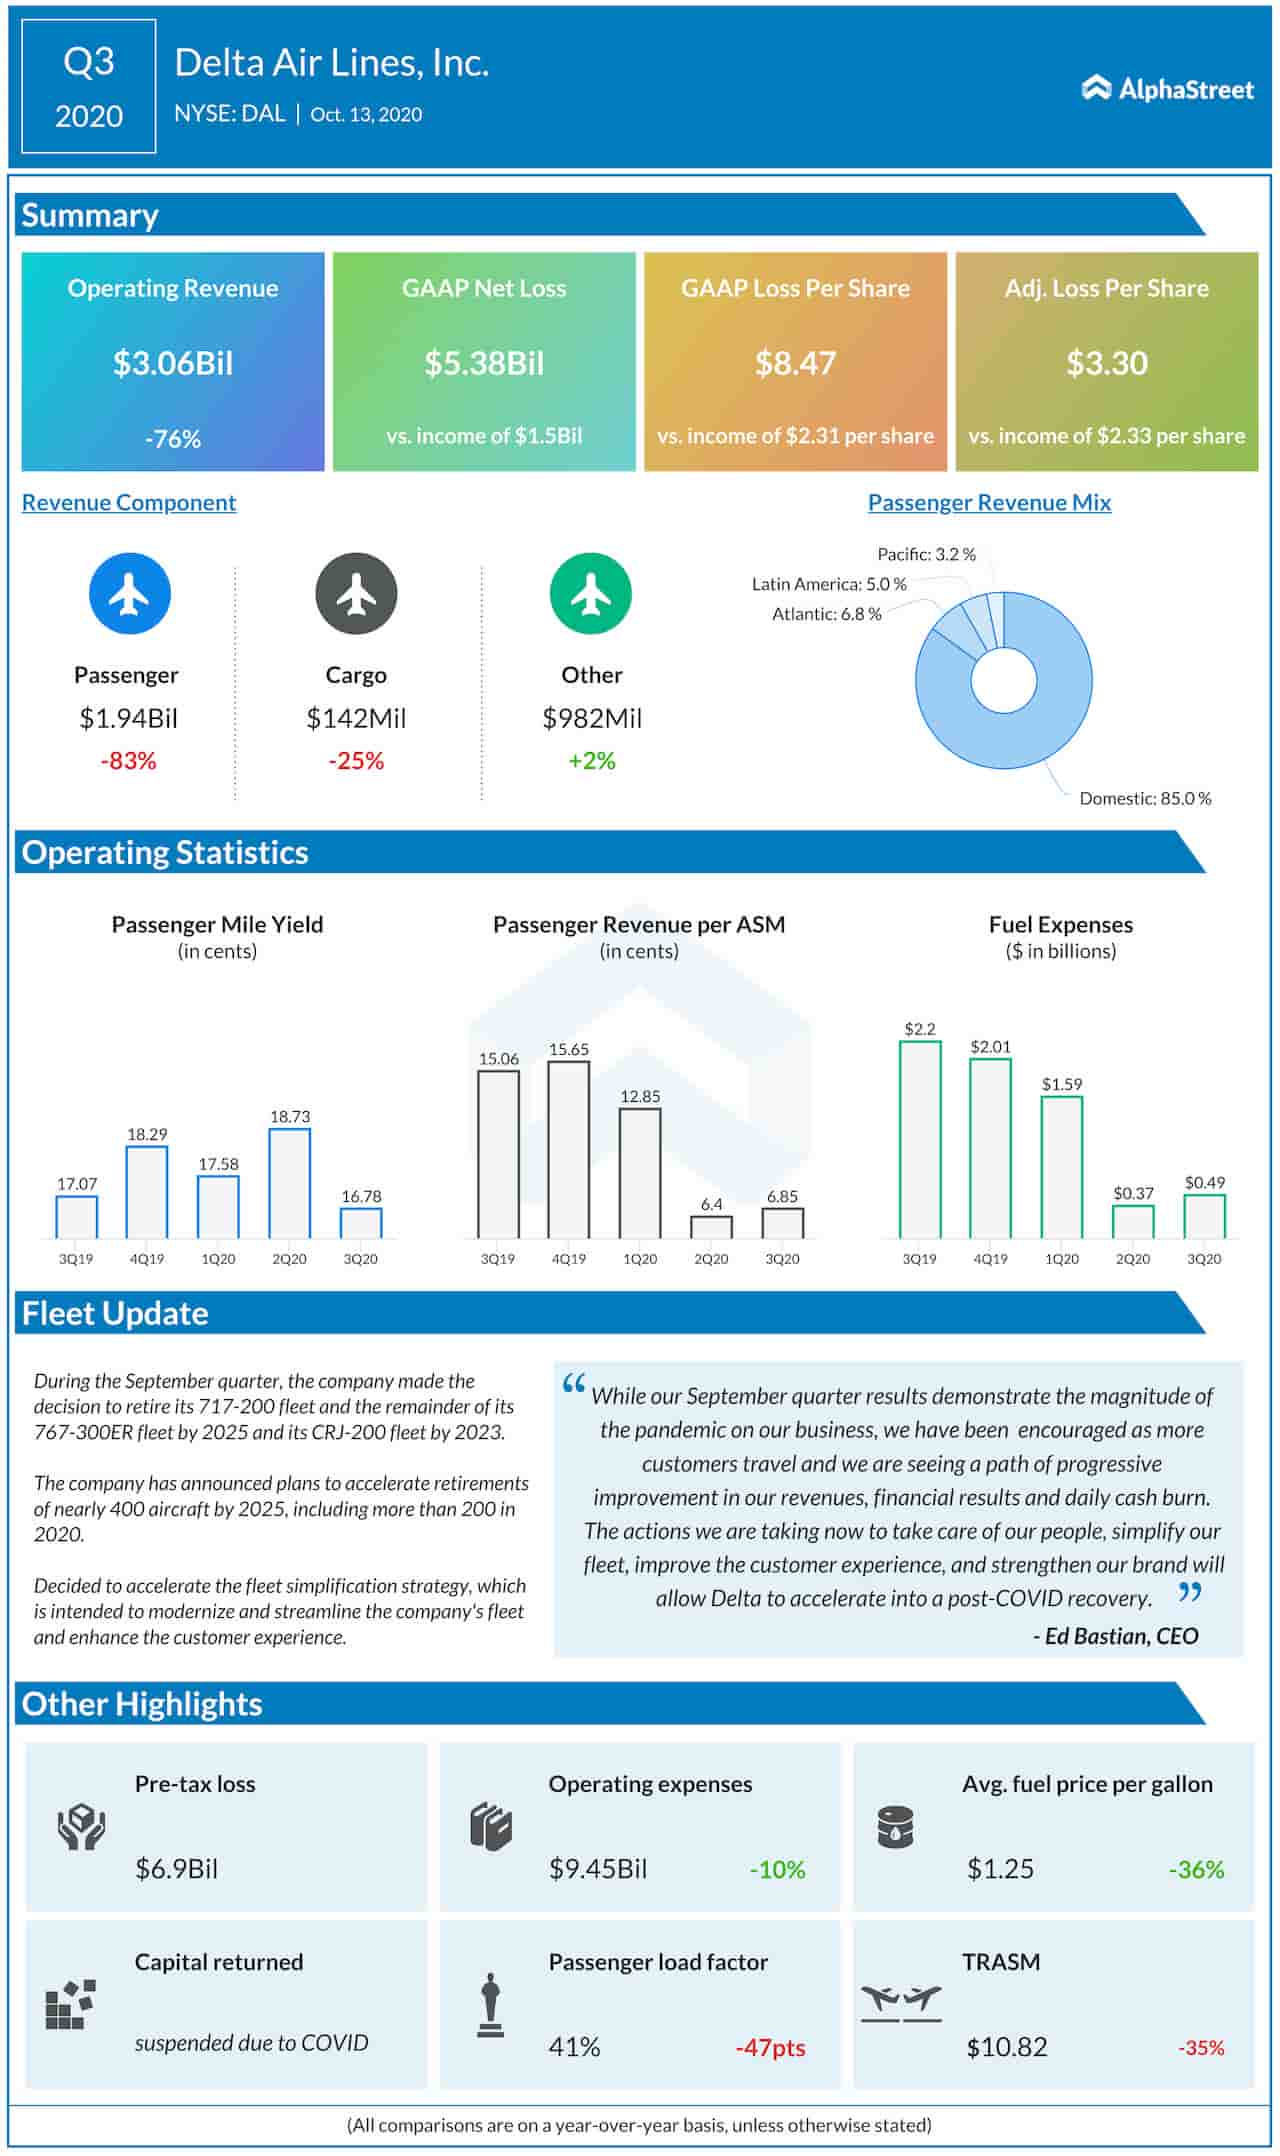 Delta Air Lines Q3 2020 earnings infographic